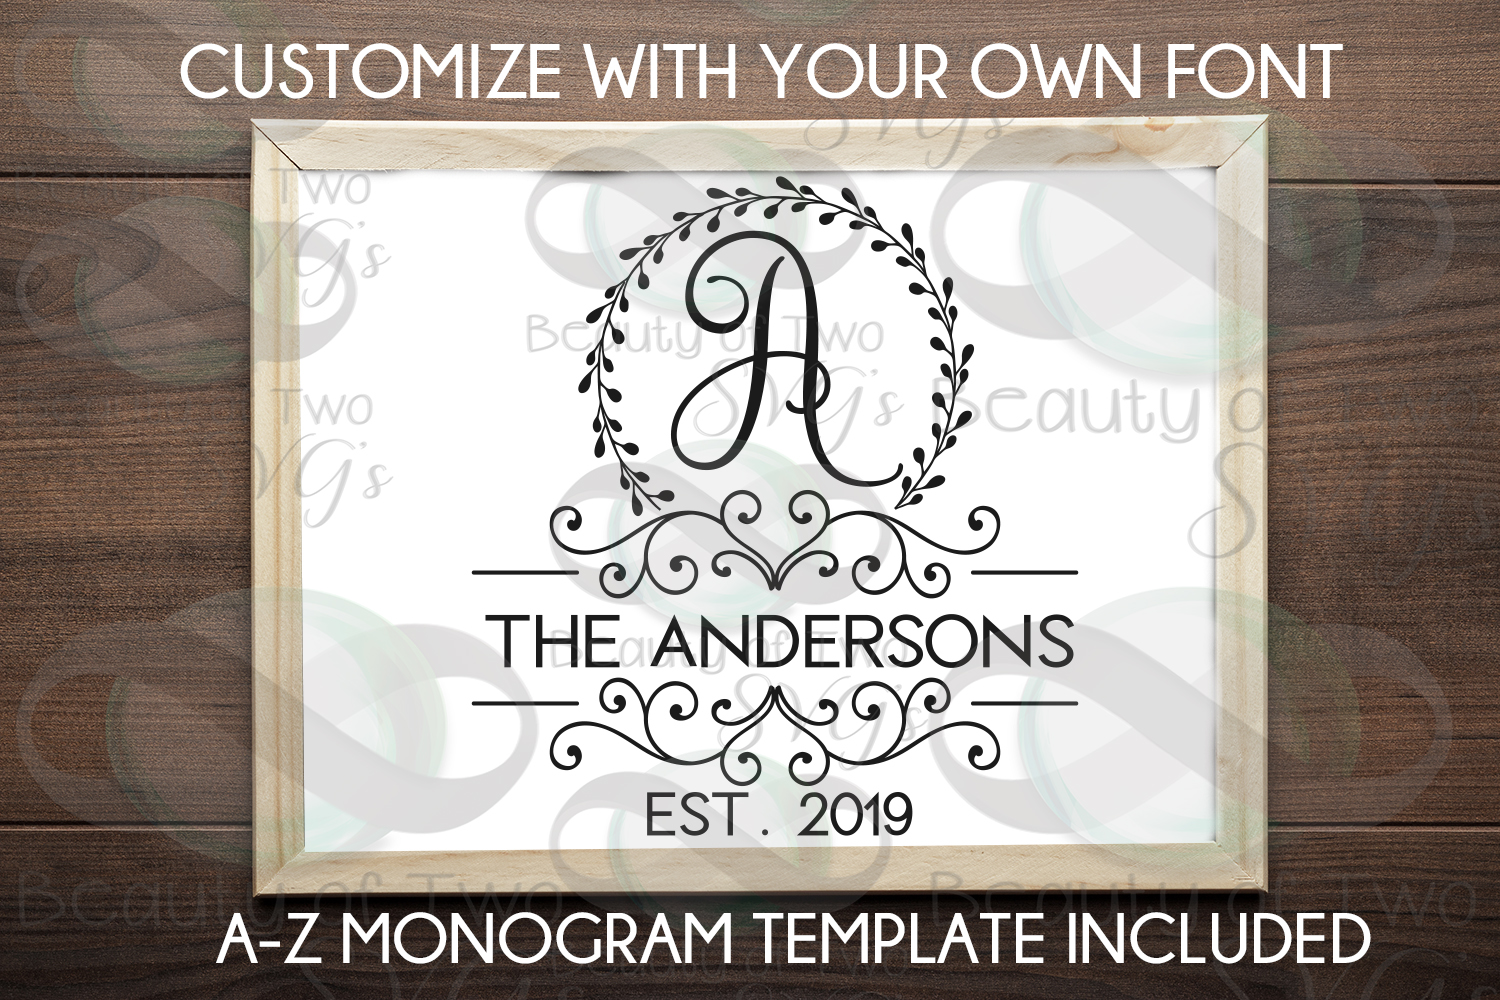 Last Name Monogram initial wreath svg, a-z monogram included example image 2